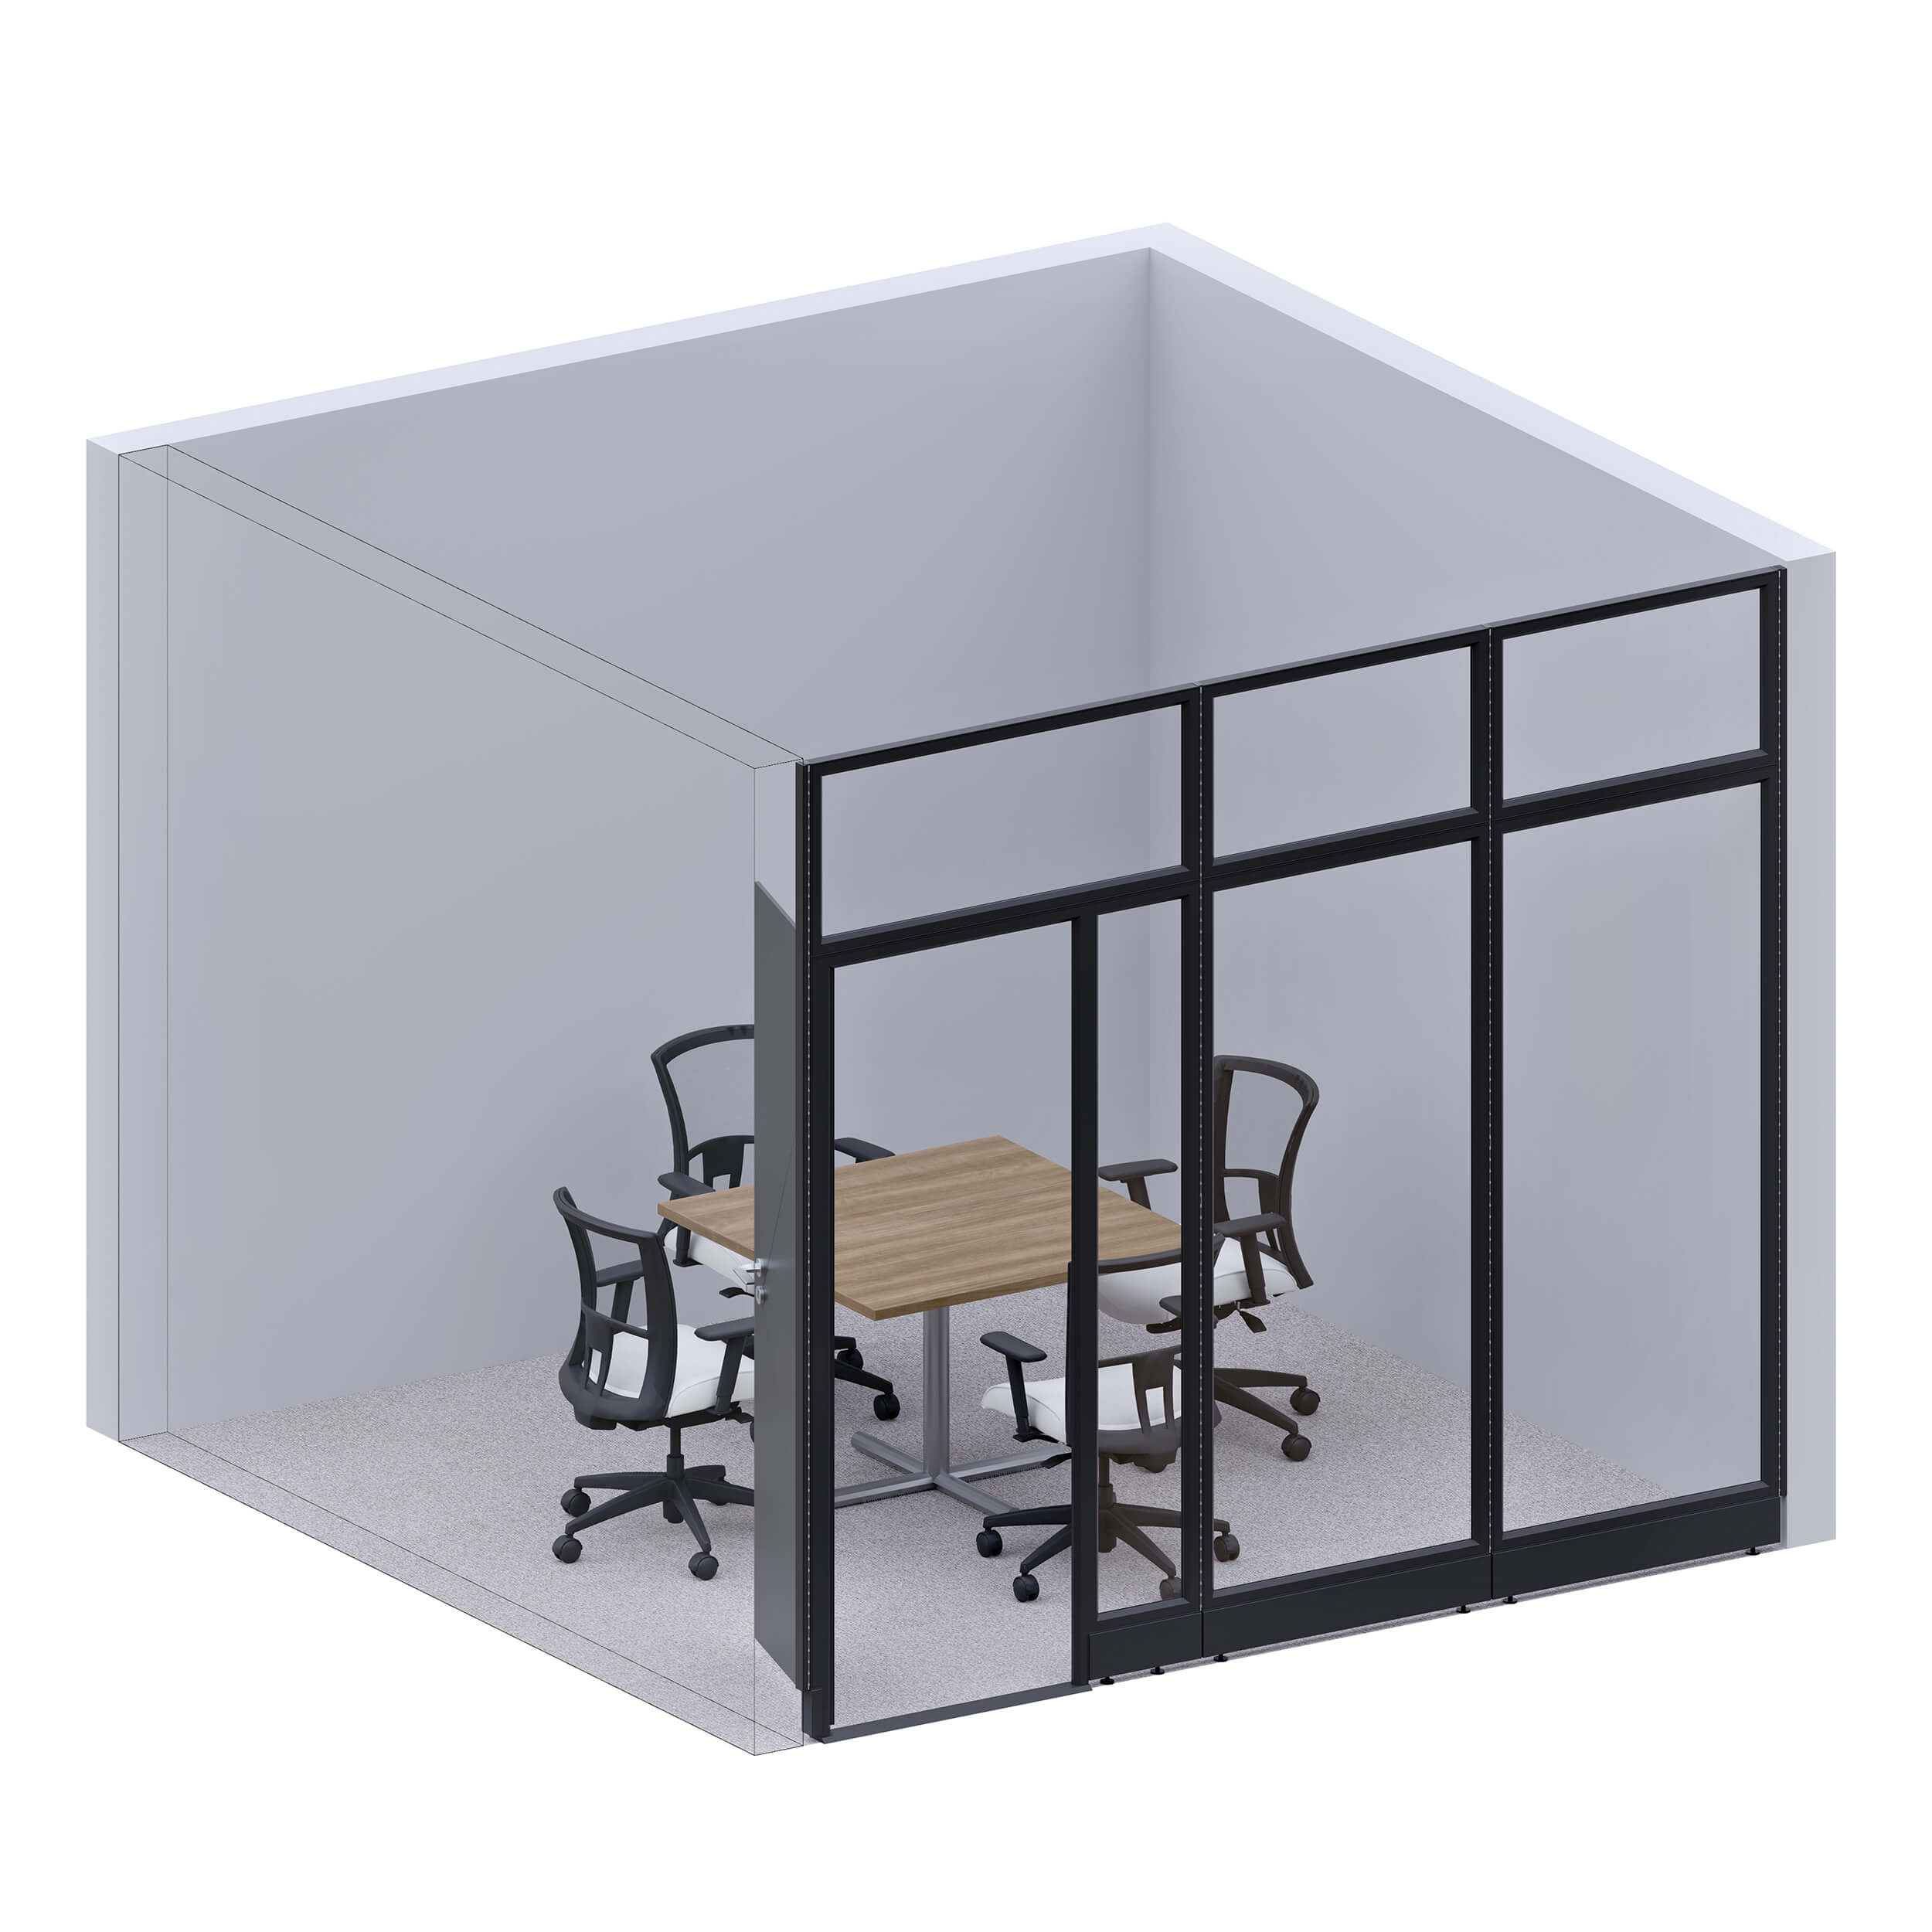 office-walls-glass-wall-conference-room-107h-i-shape.jpg